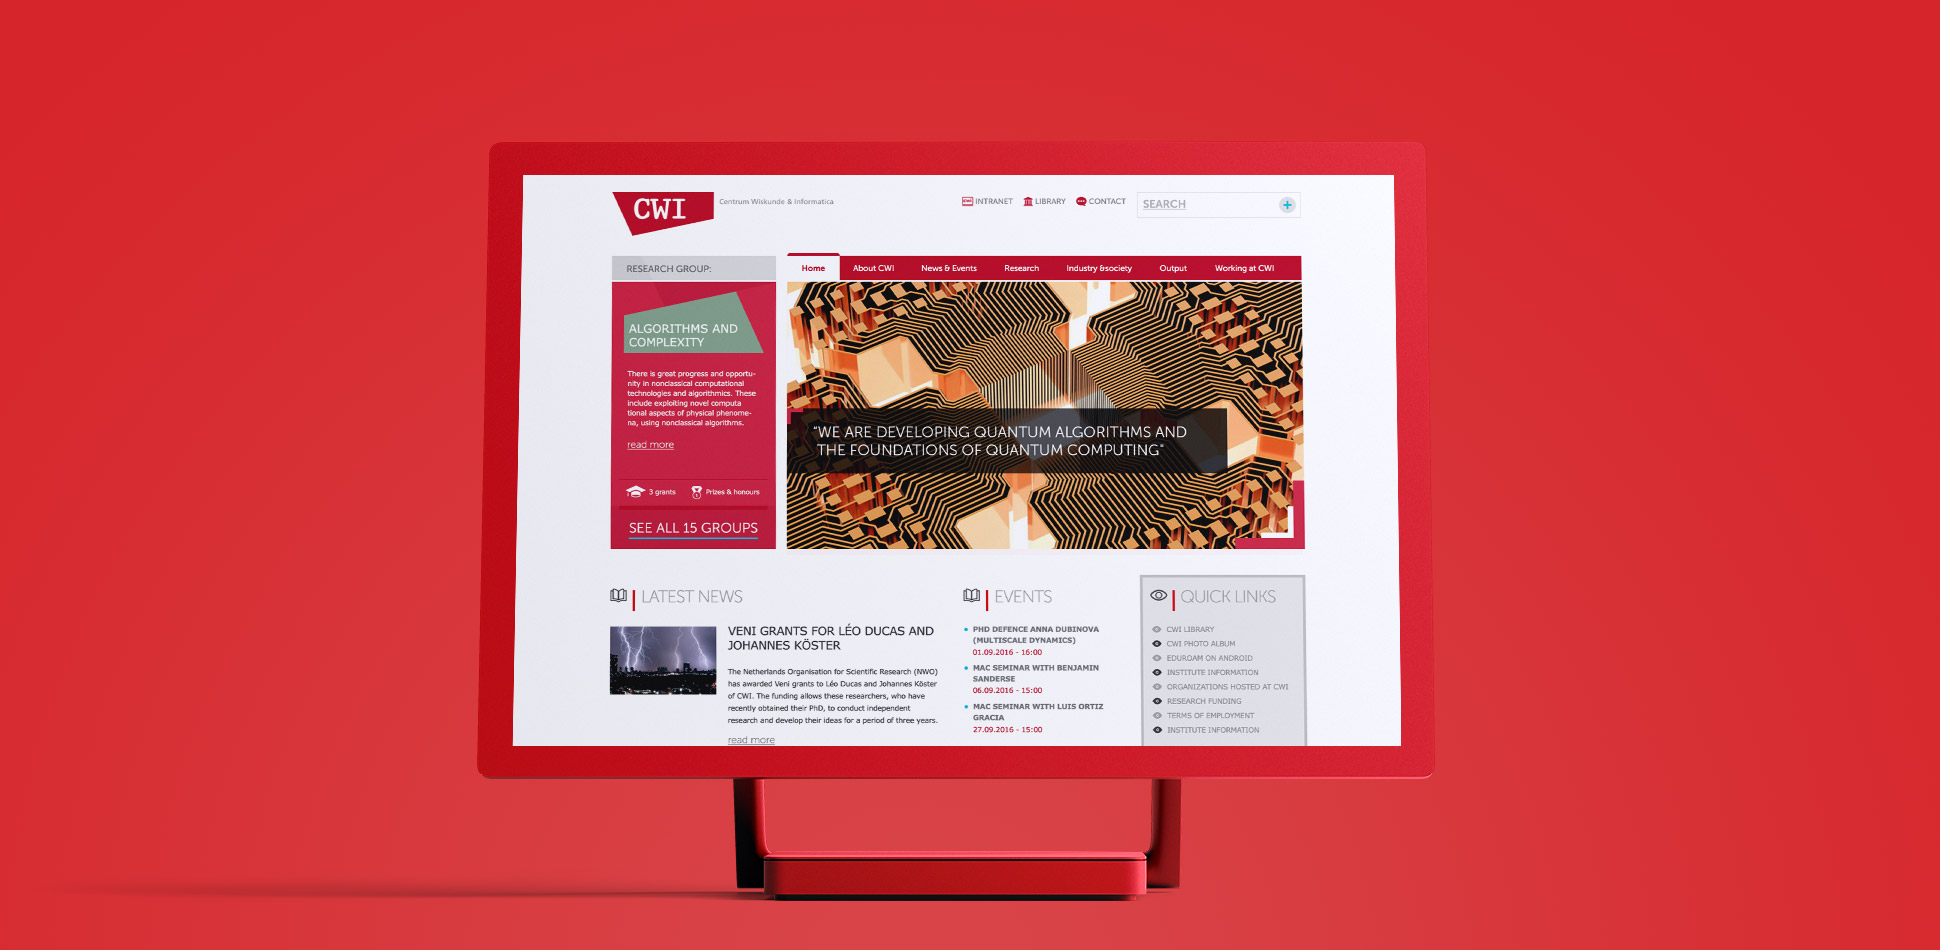 nothingblank-ui-design-cwi-intranet